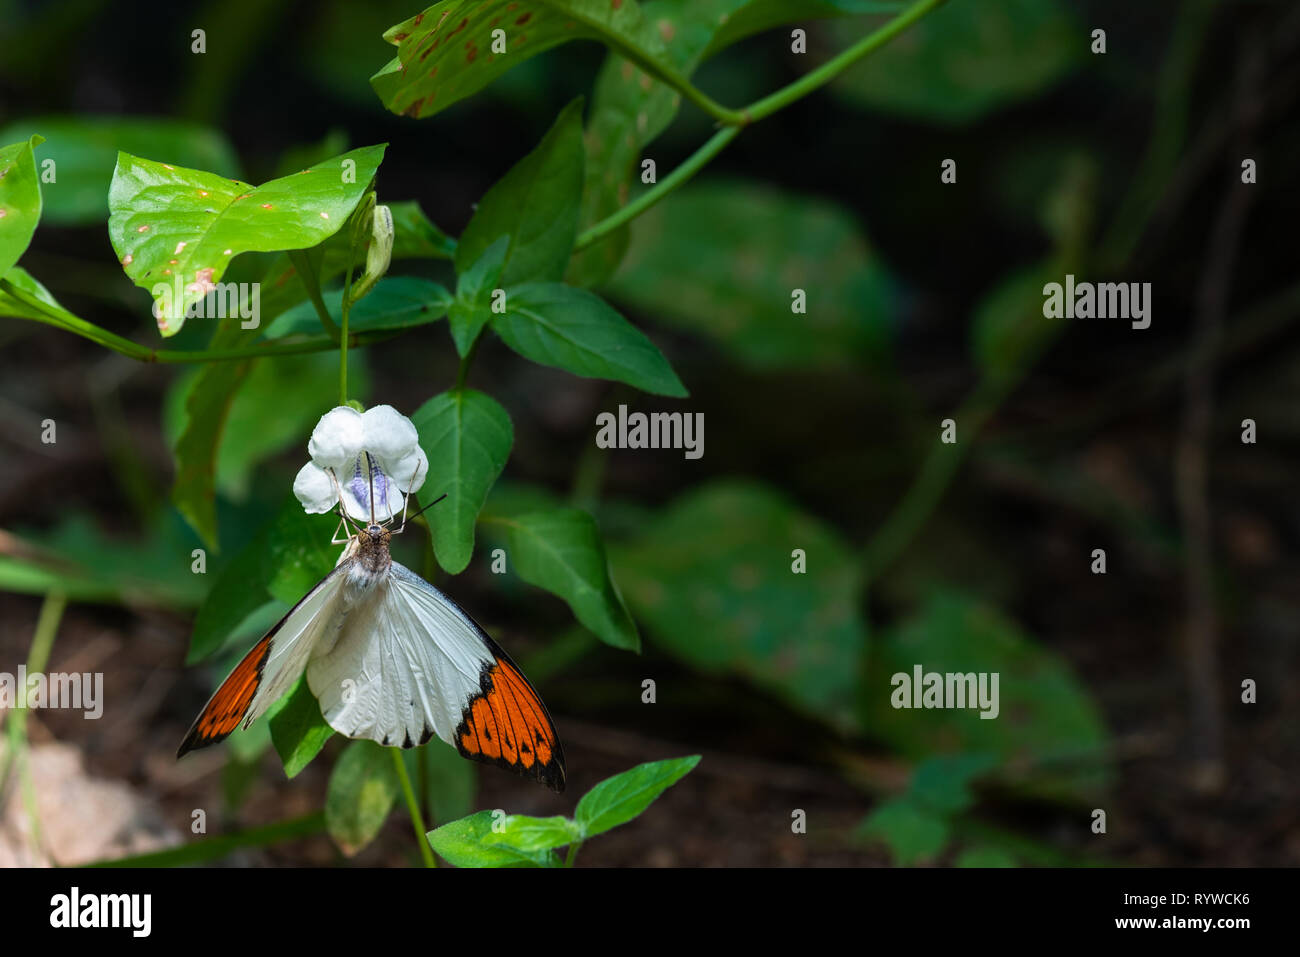 A white and orange butterfly feeding on nectar from a flower. - Stock Image